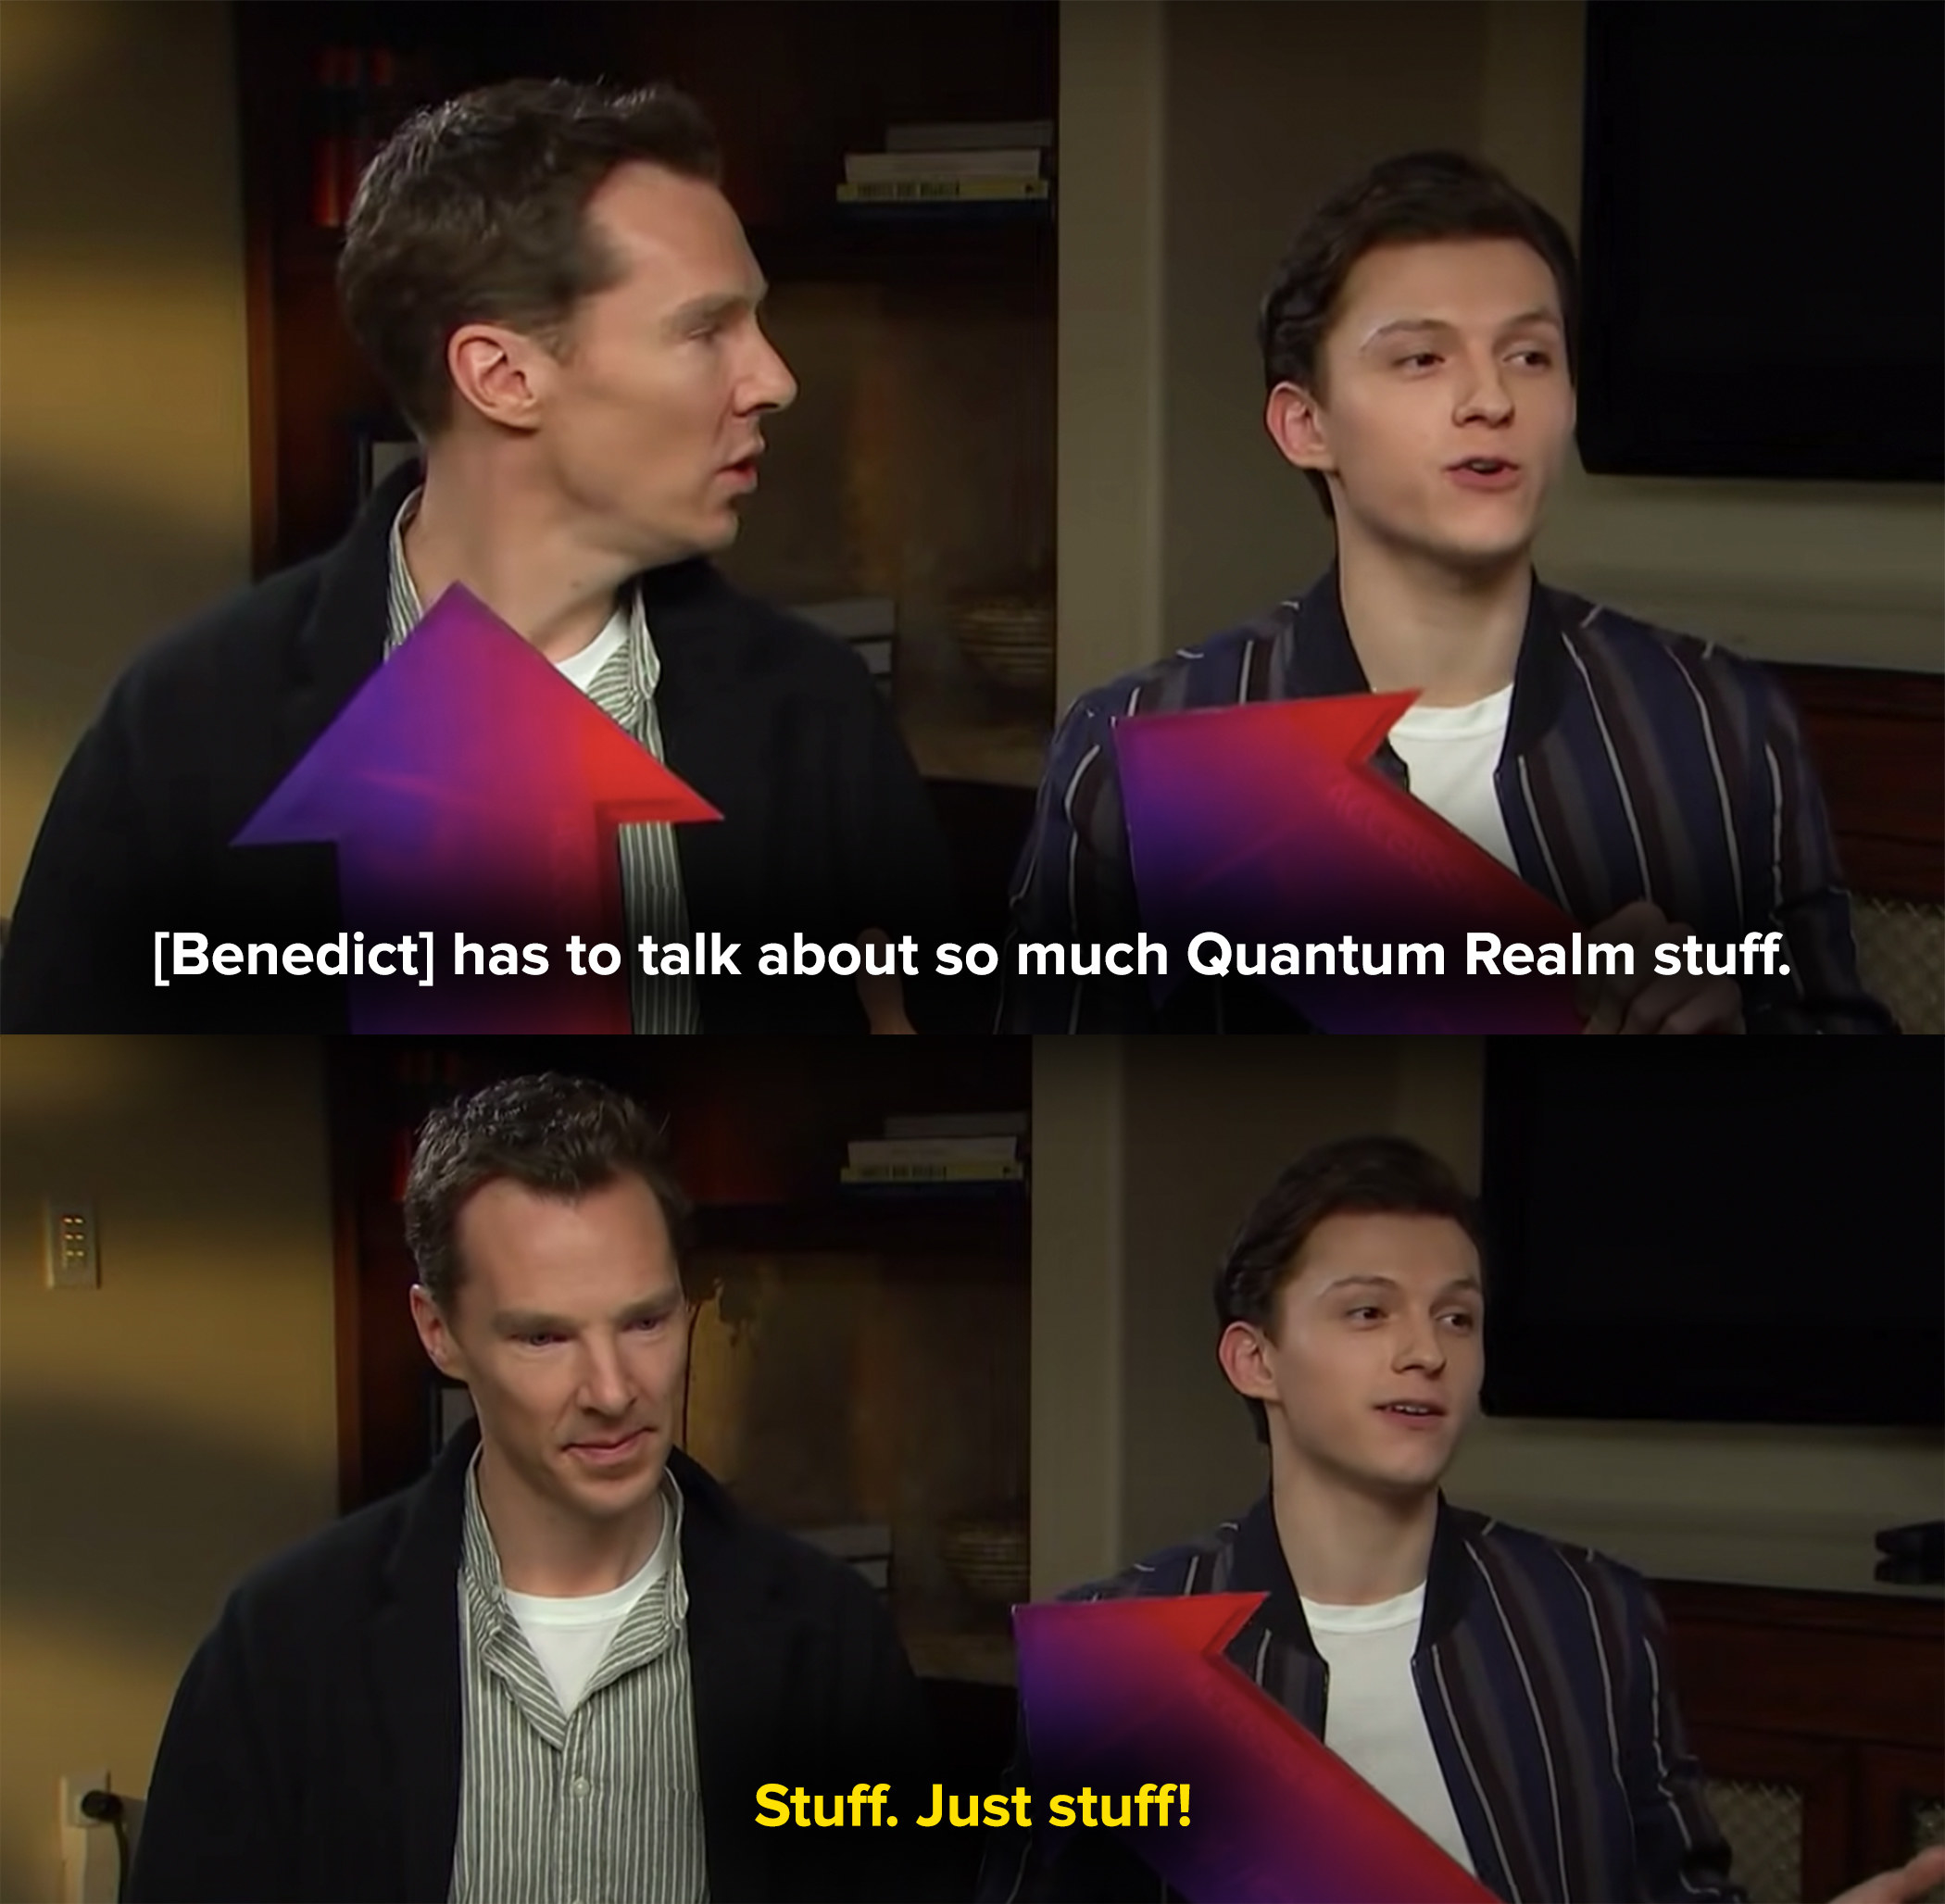 Tom says Ben has to talk about so much Quantum Realm stuff